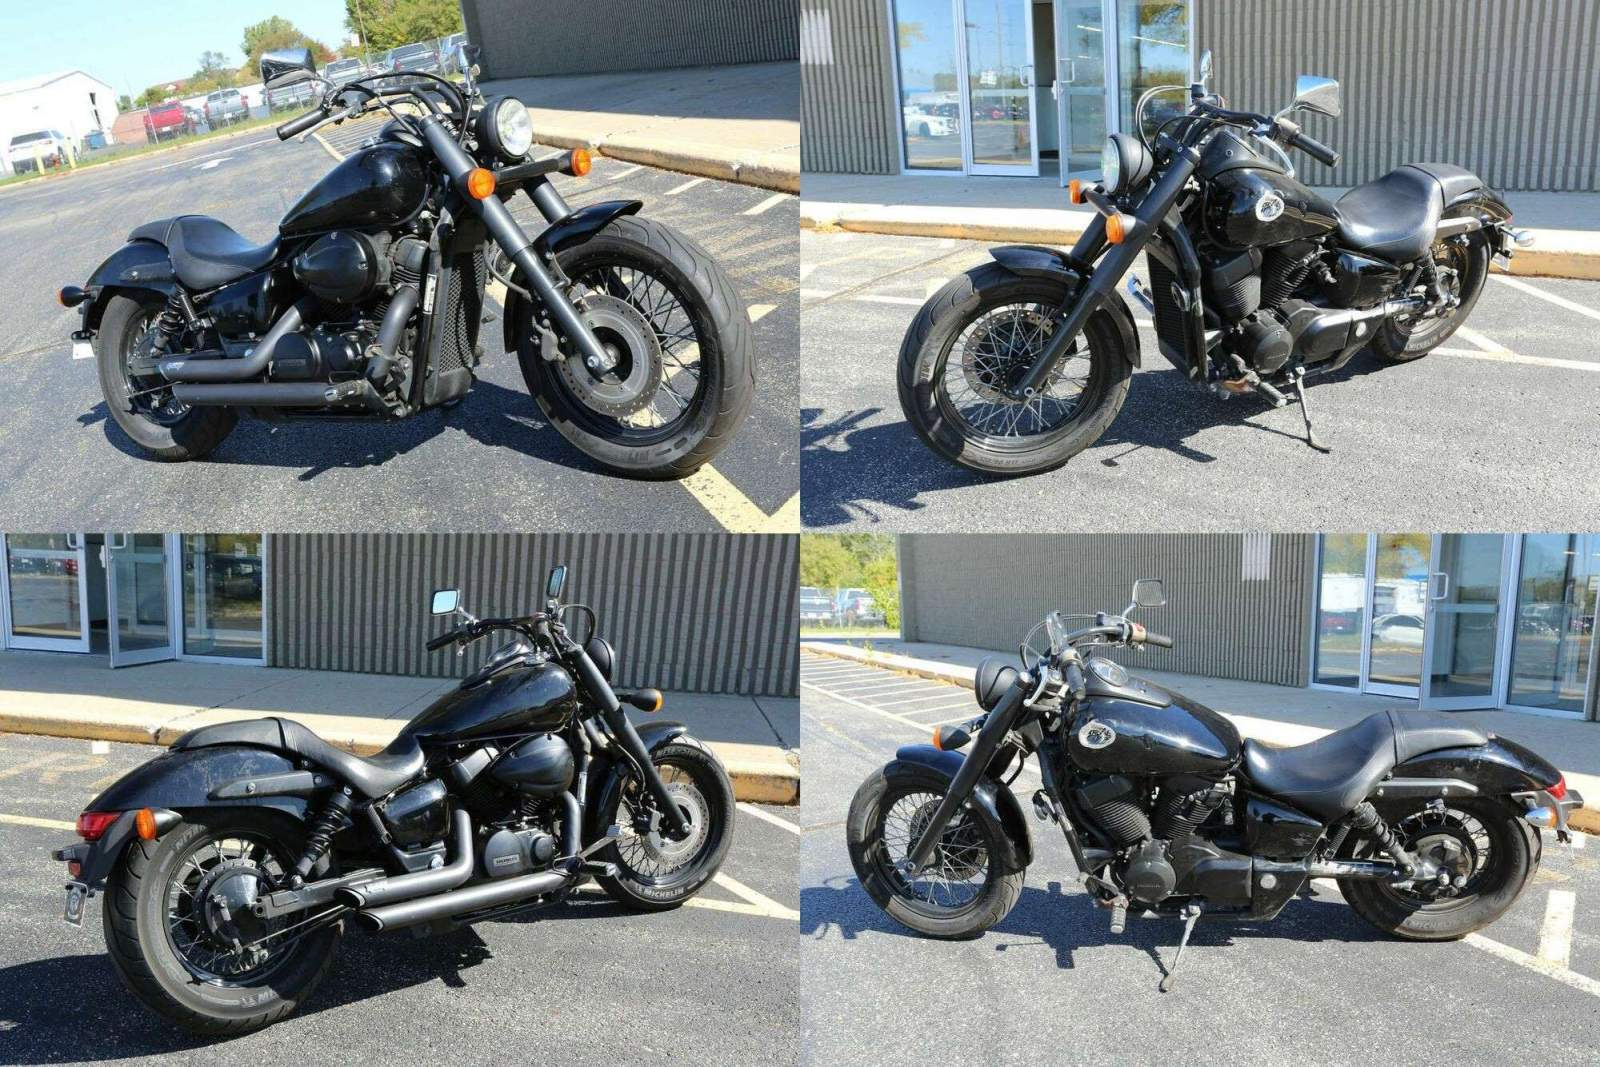 2015 Honda Shadow Silver used for sale near me